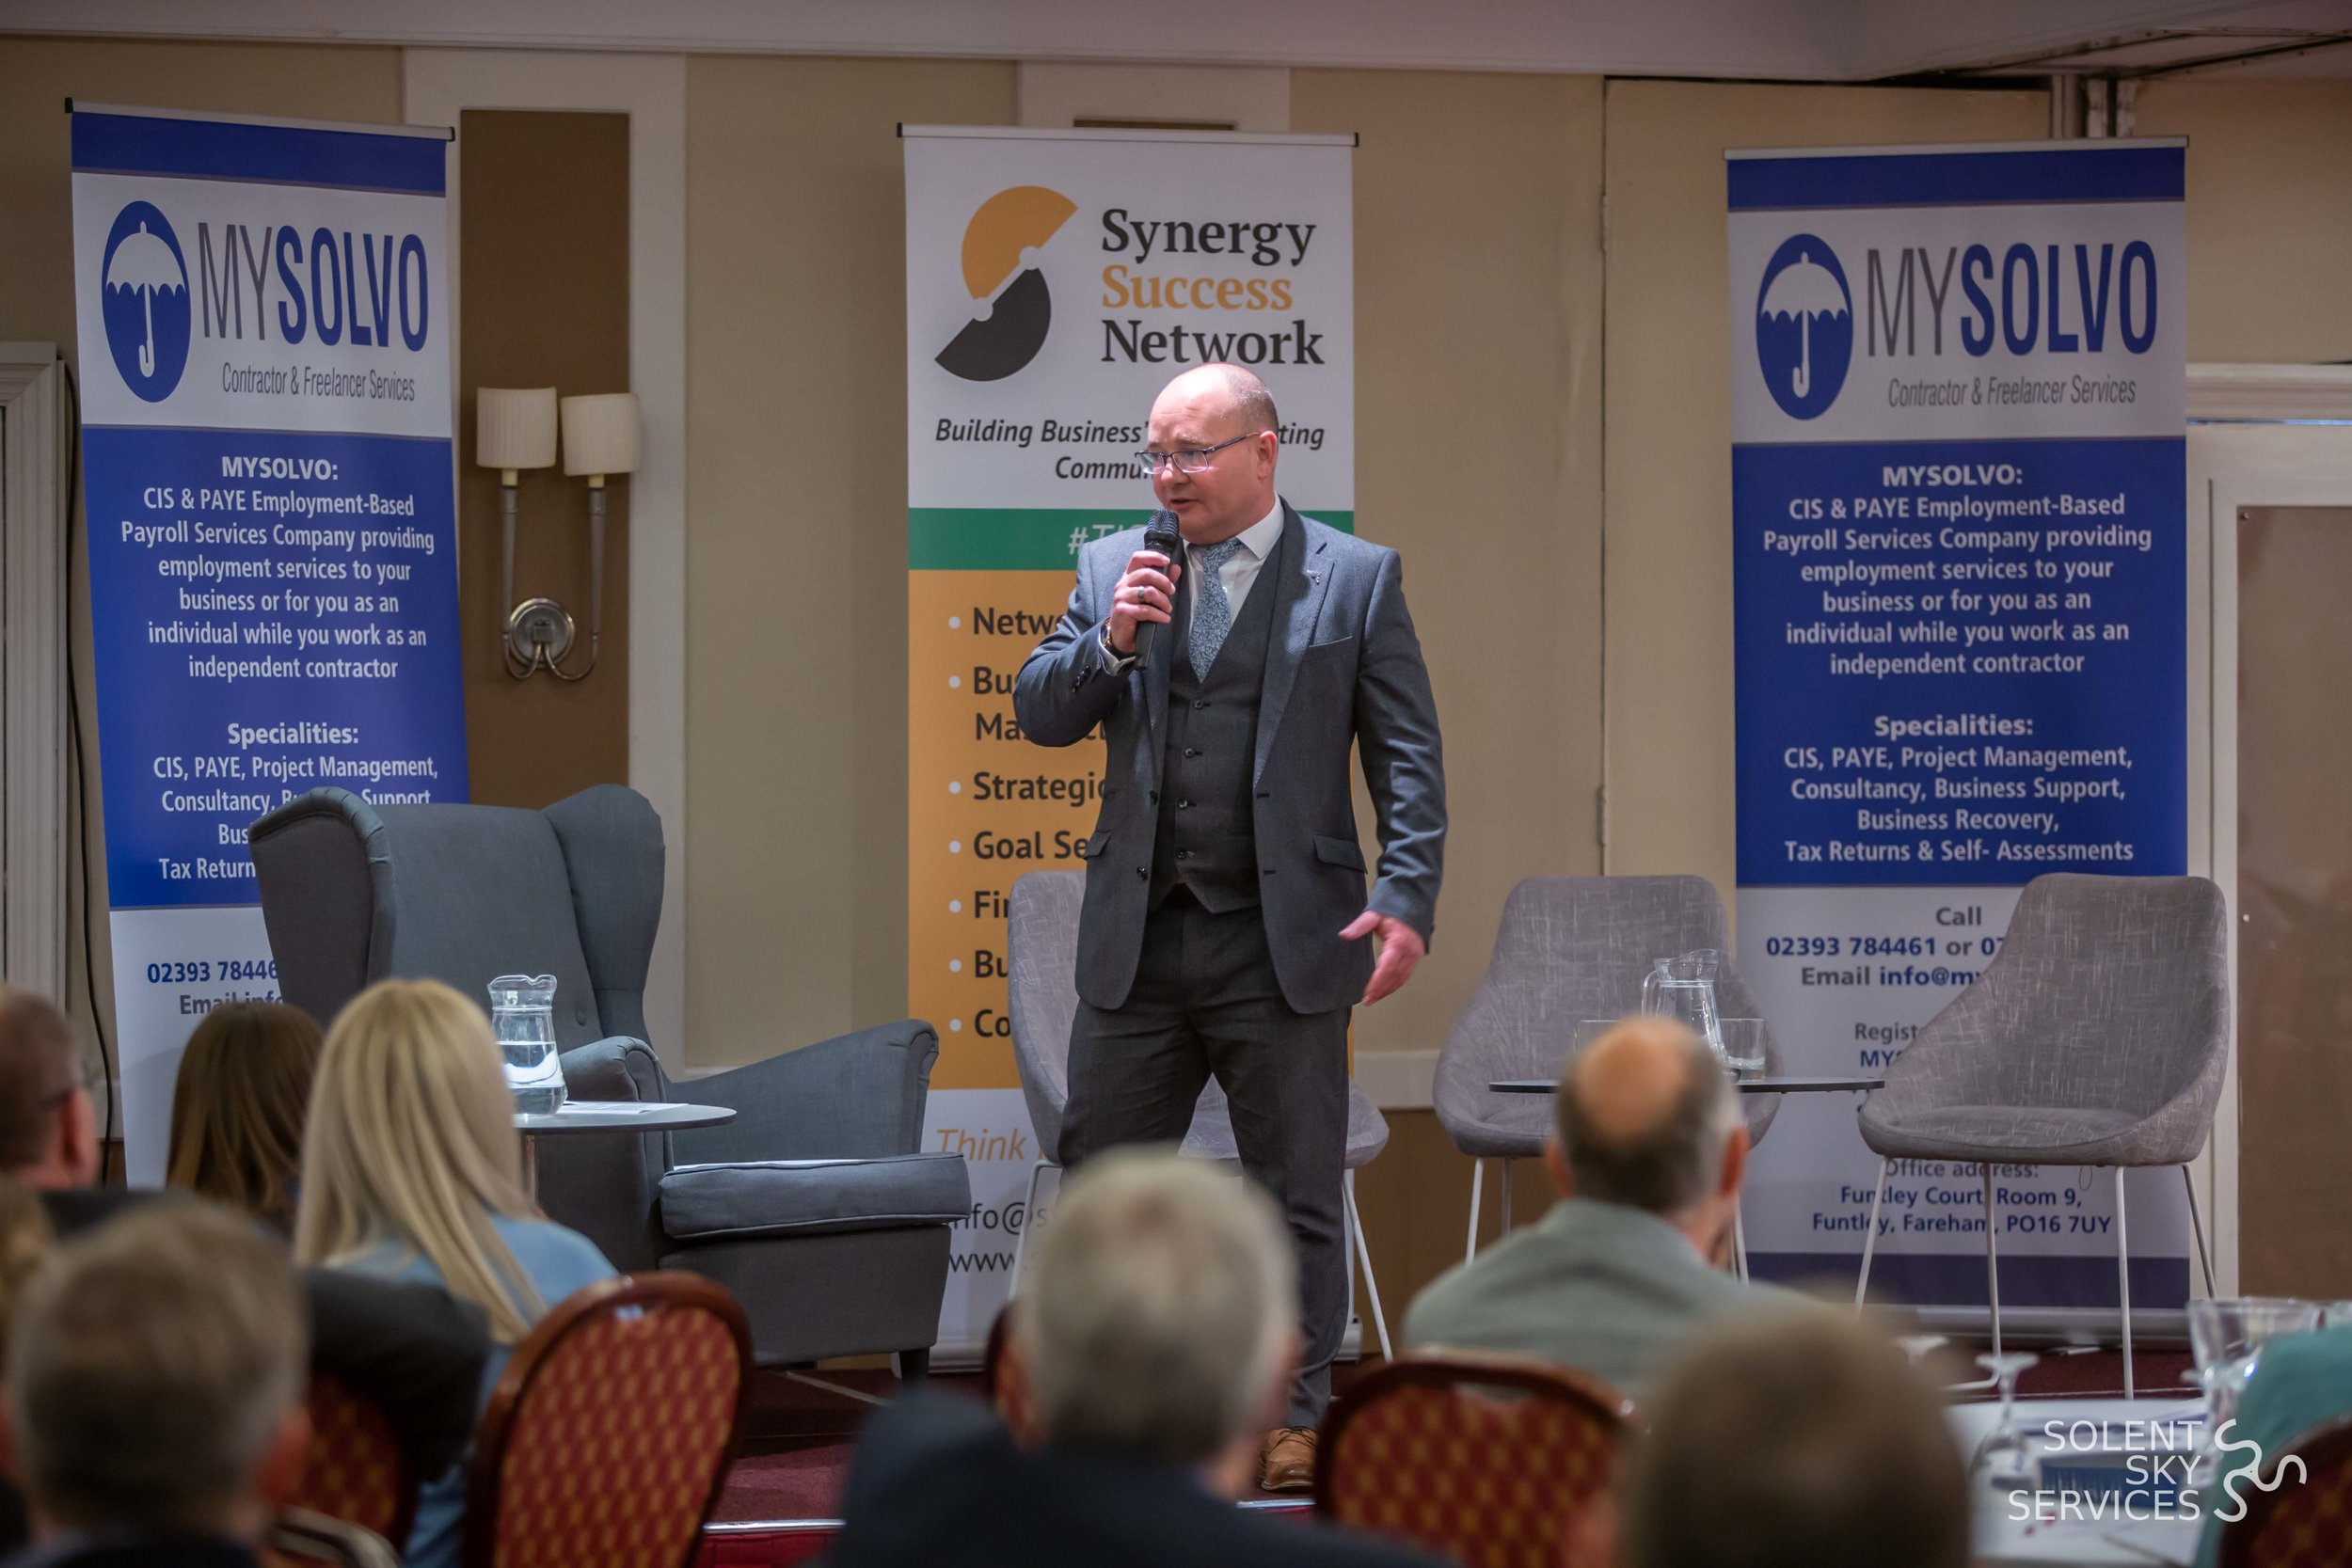 Synergy Success Networking Event #2 - Solent Sky Services-37.JPG